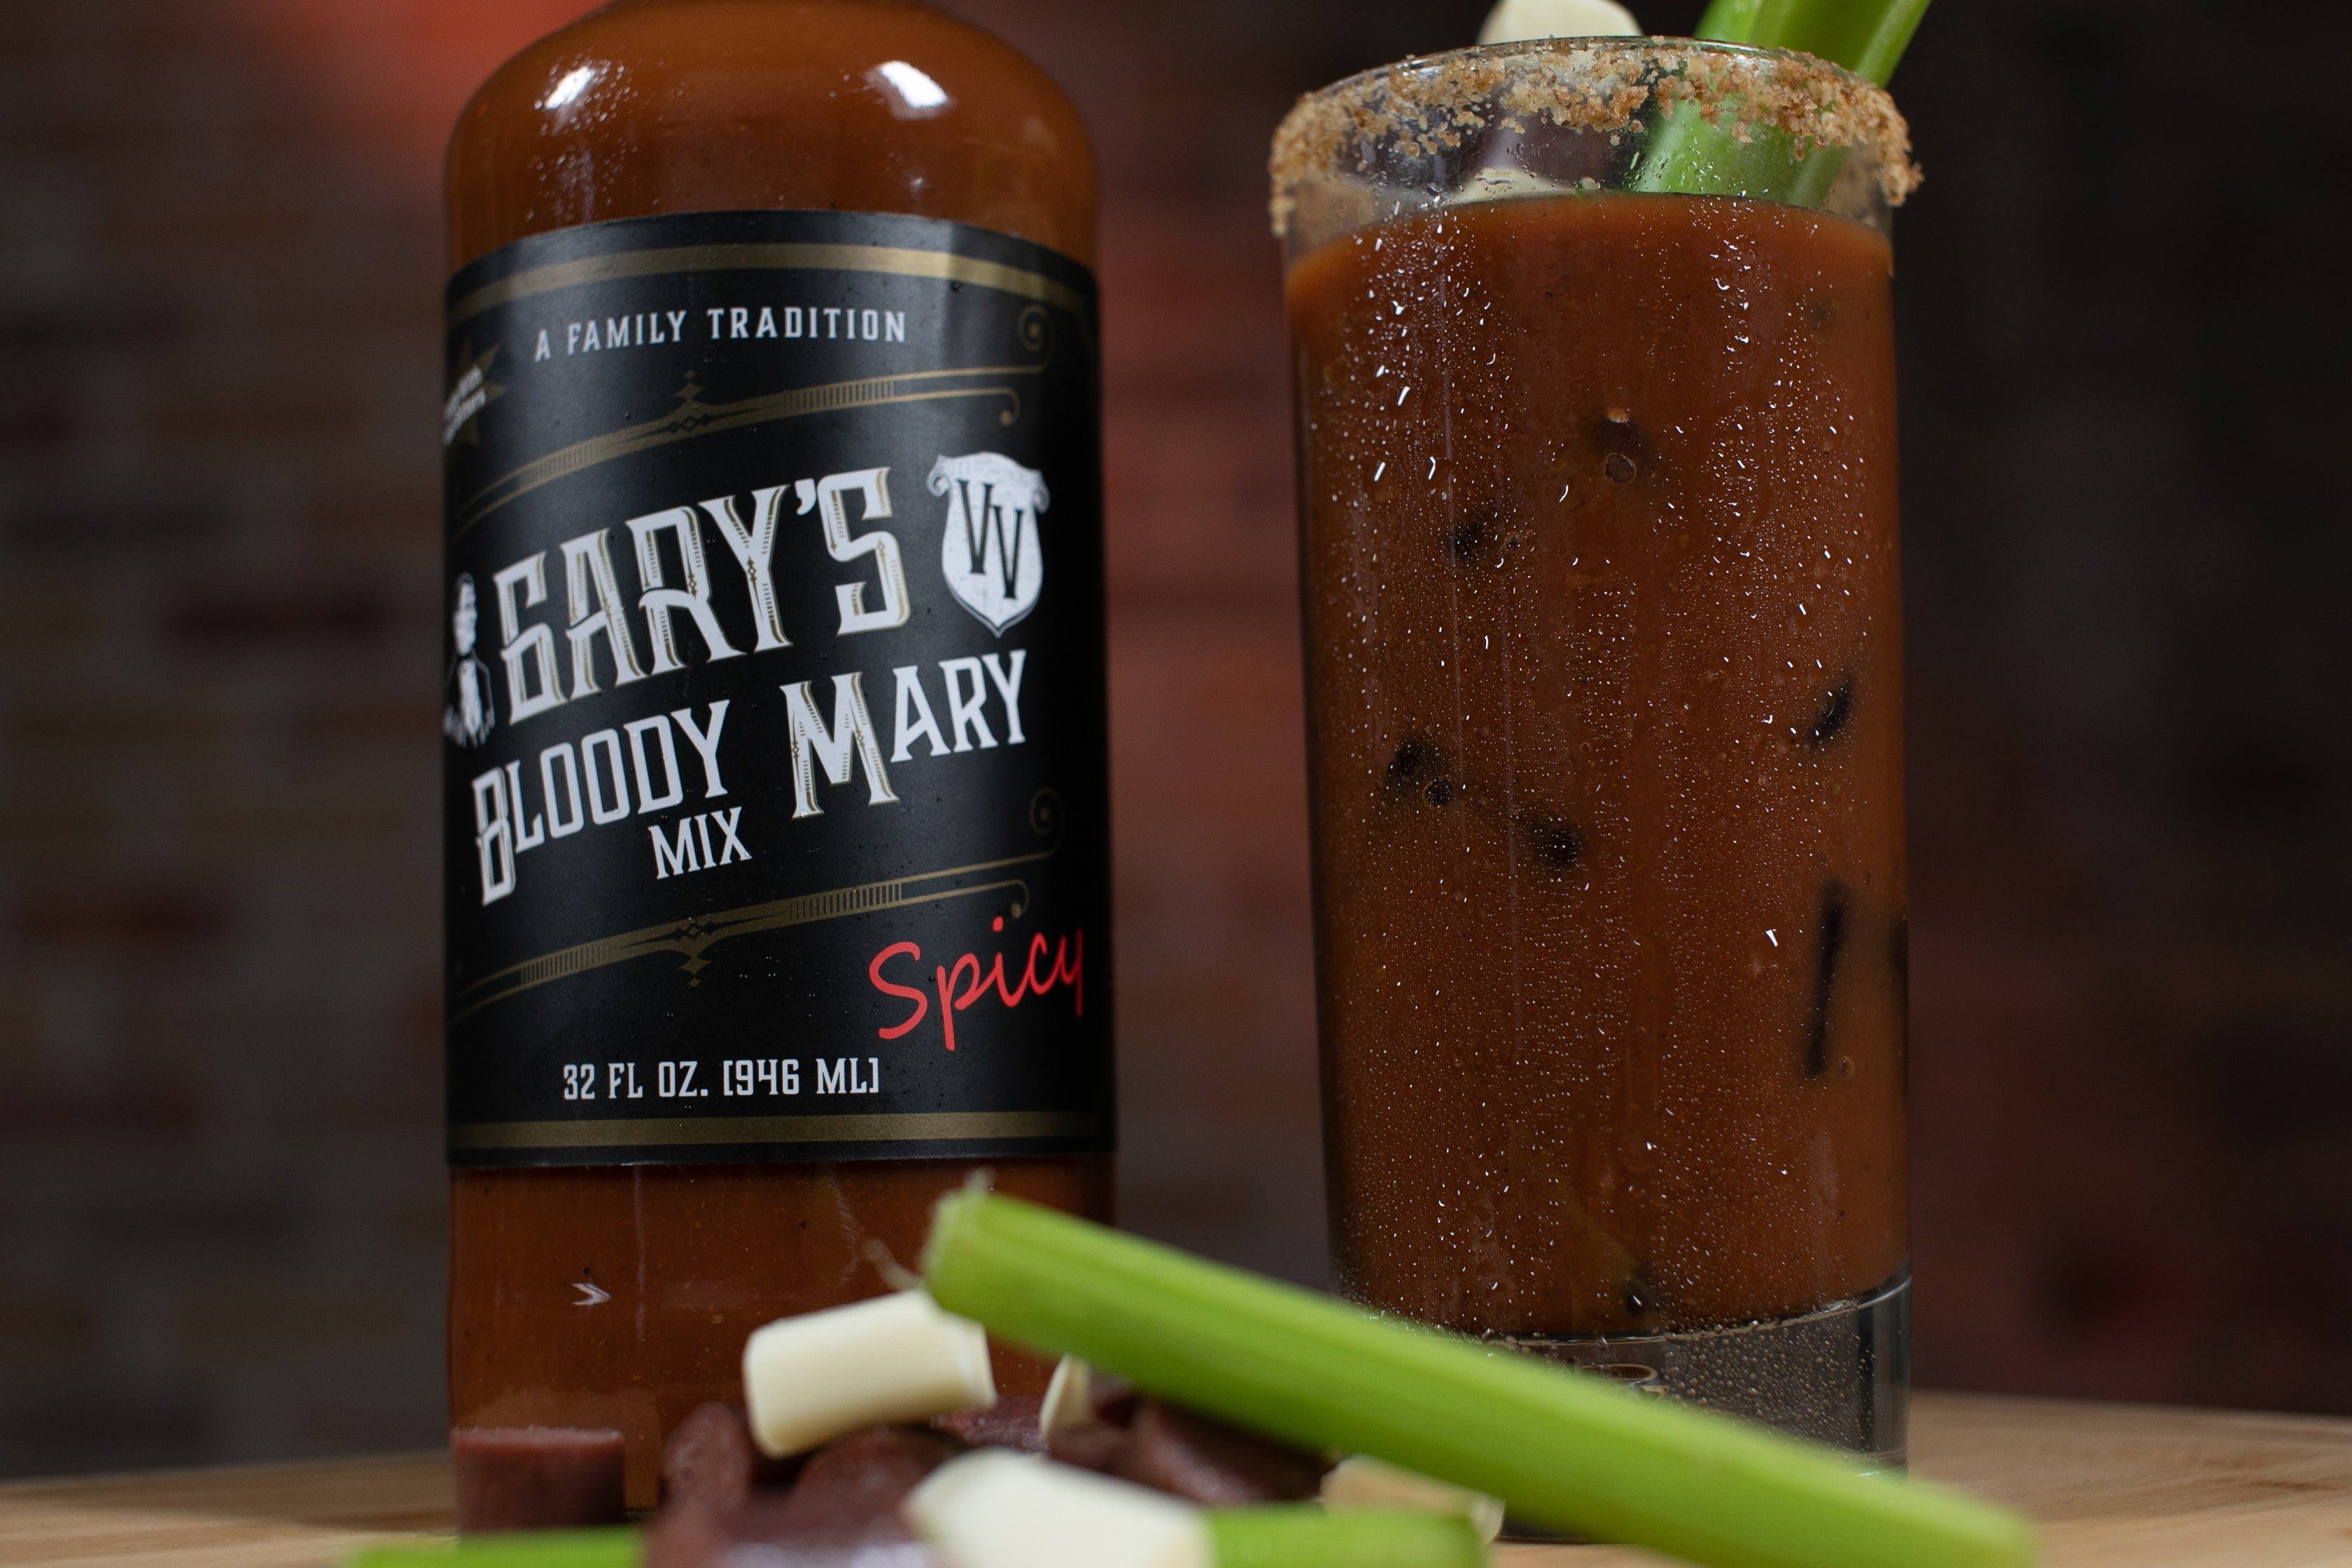 Gary's Spicy Bloody Mary Mix (32 FLOZ)